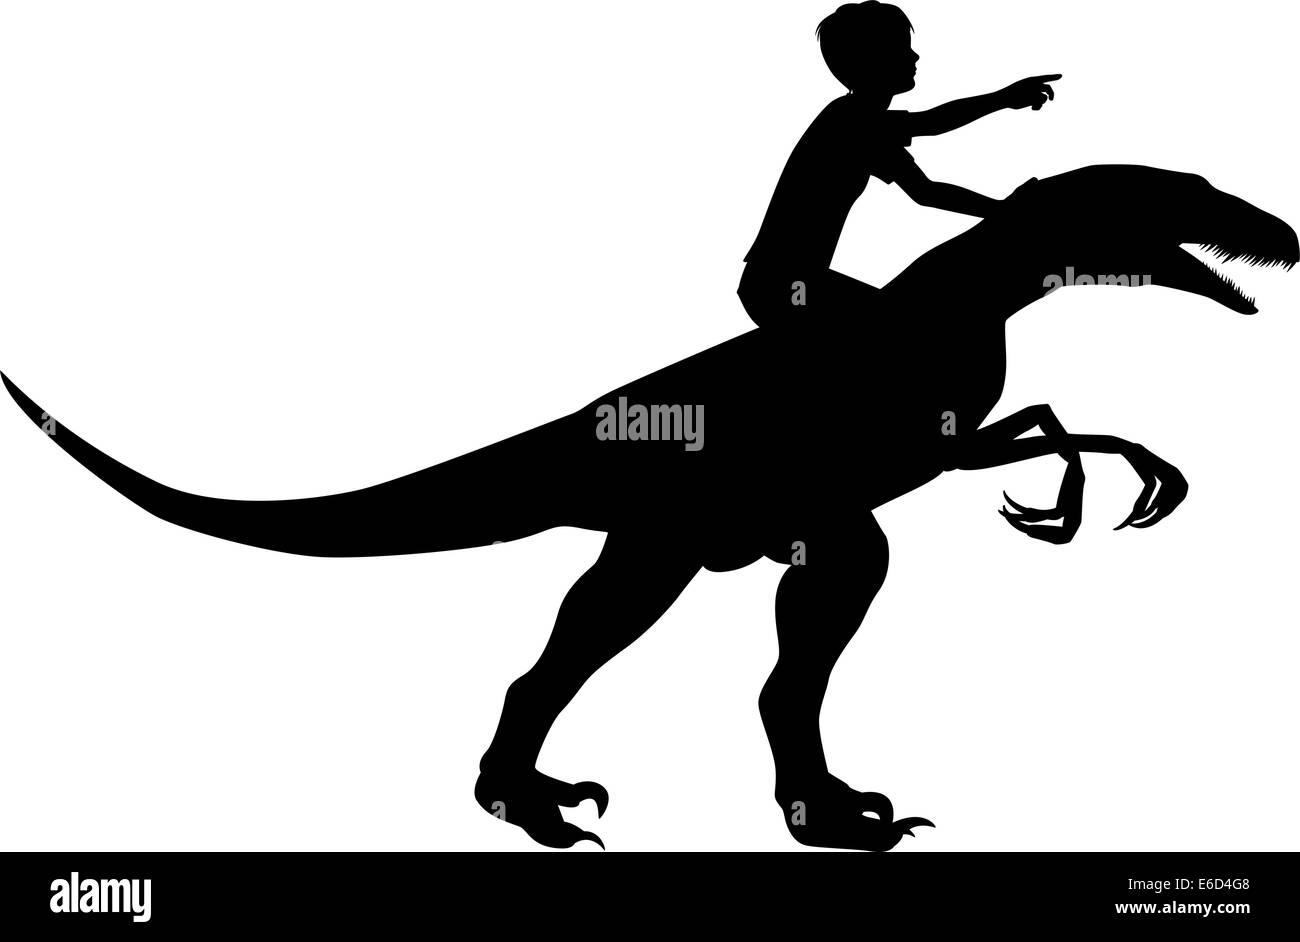 Editable vector silhouette of a boy riding a velociraptor with boy and dinosaur as separate objects - Stock Image